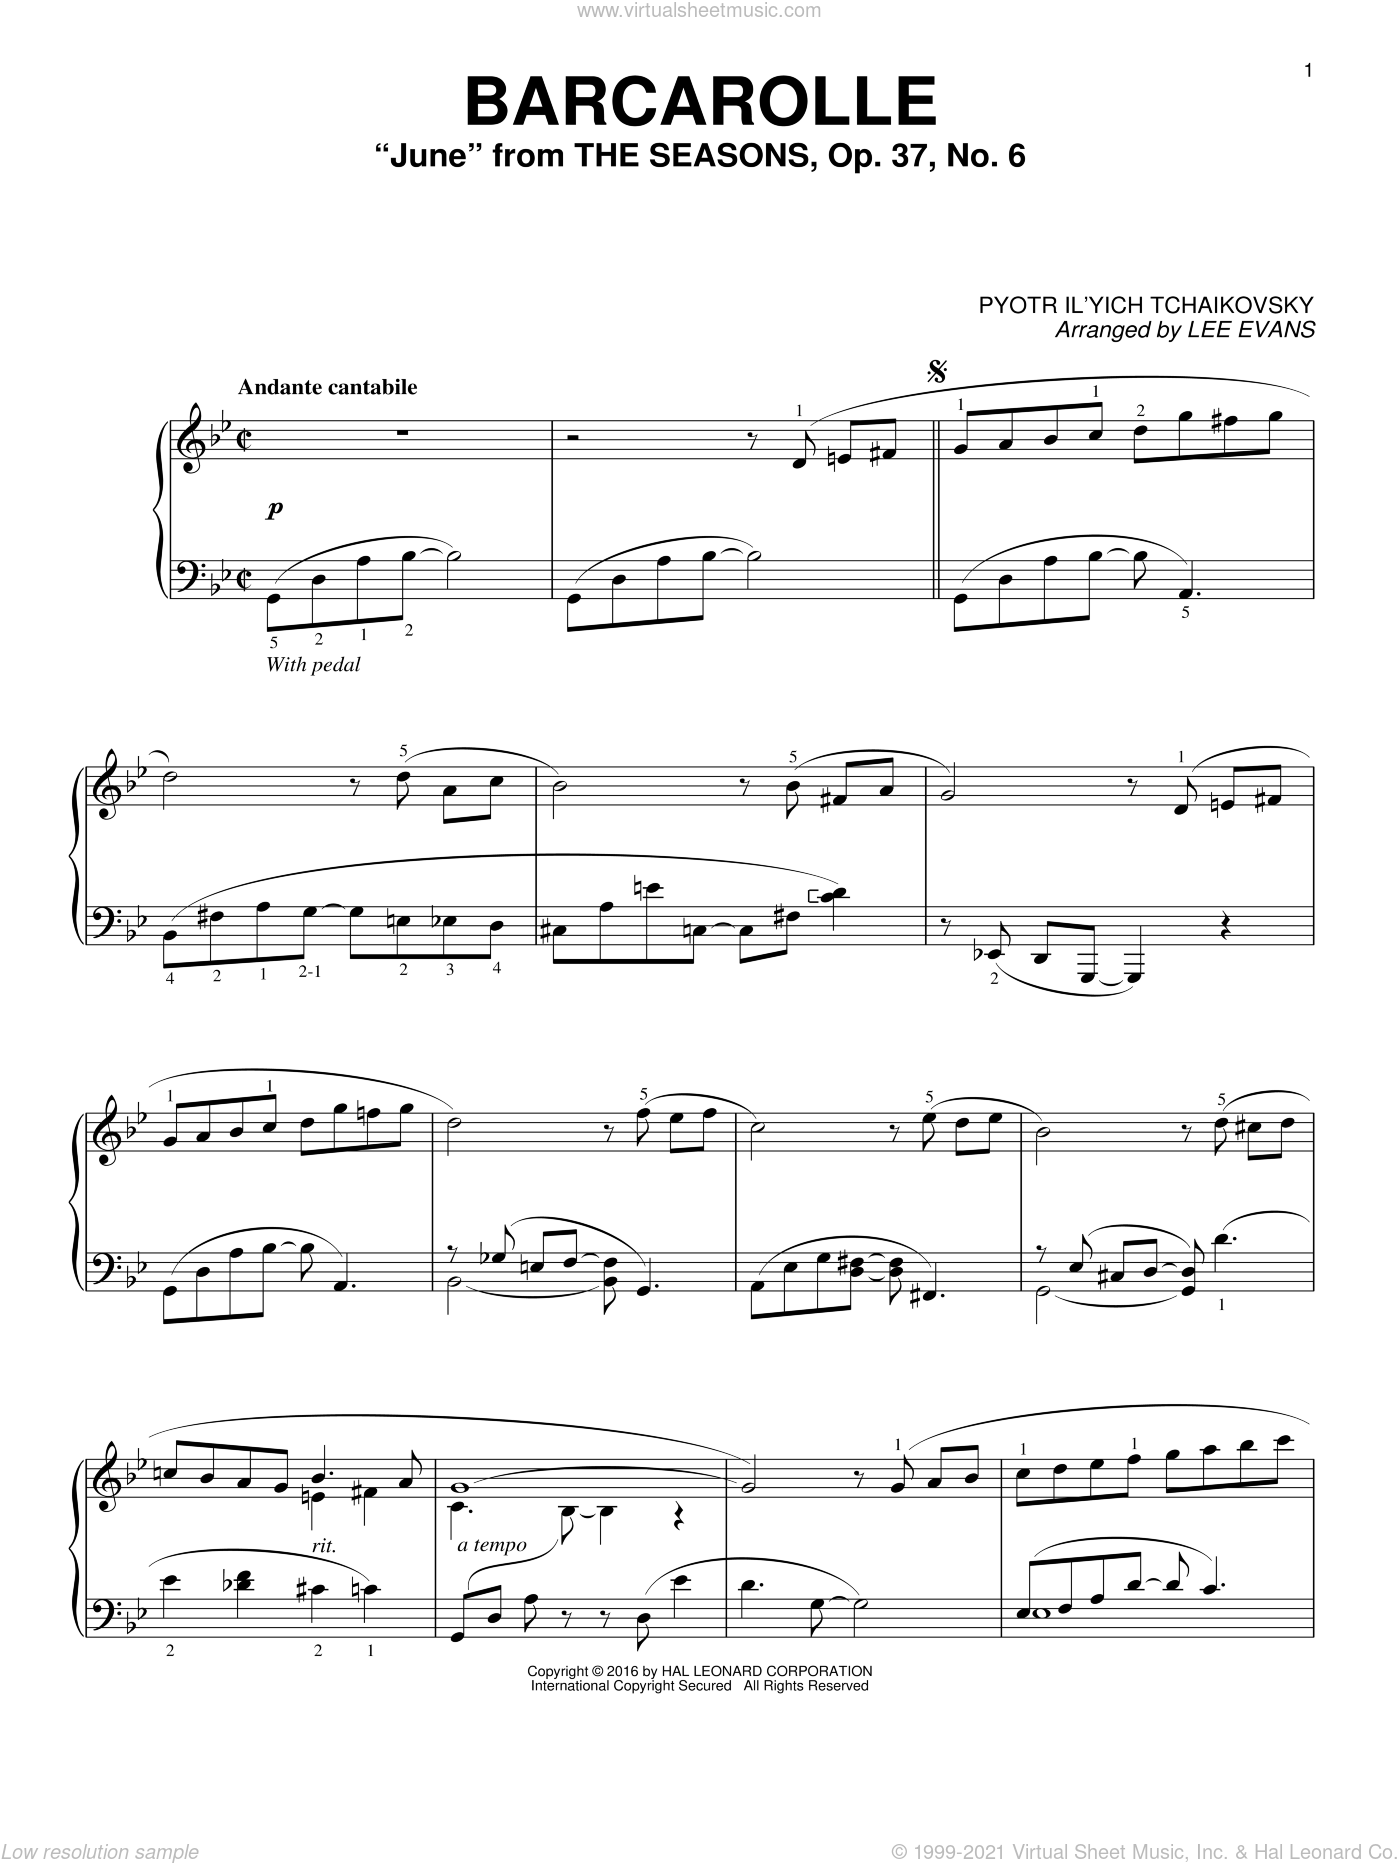 Barcarolle In G Minor ('June'), Op. 37, No. 6 sheet music for piano solo by Pyotr Ilyich Tchaikovsky and Lee Evans, classical score, intermediate skill level